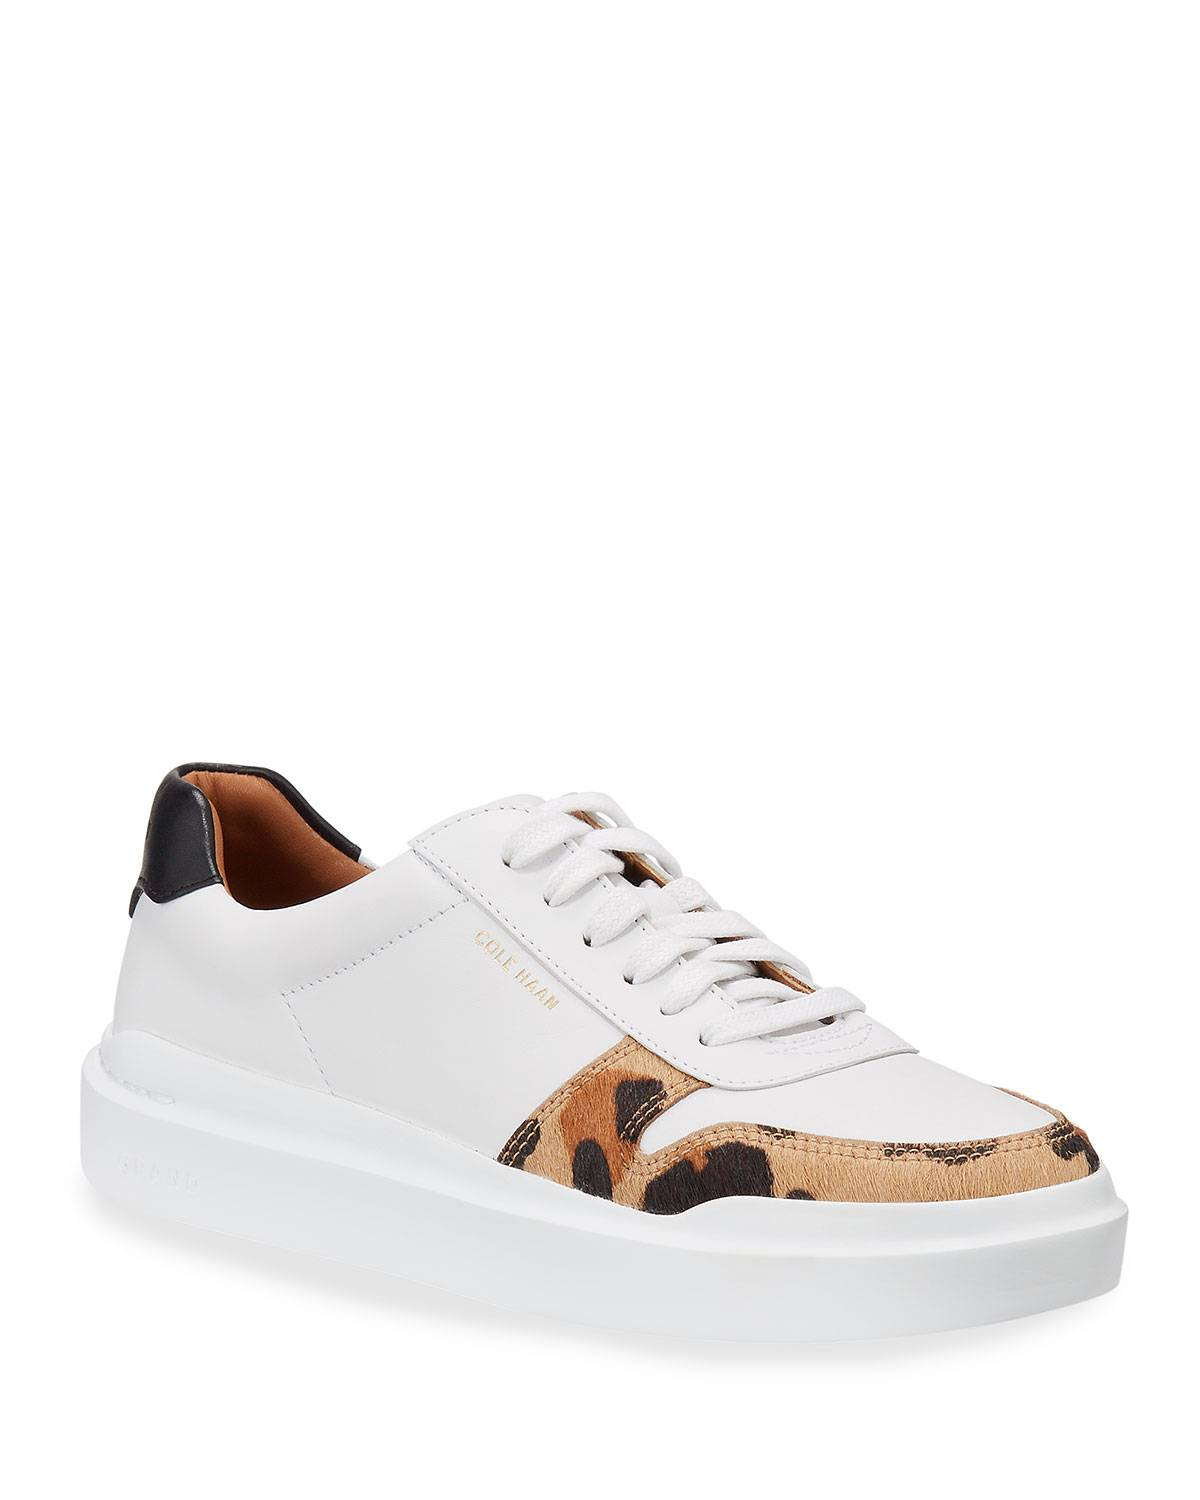 Cole Haan Grandpro Rally Court Sneakers - Size: 5B / 35EU